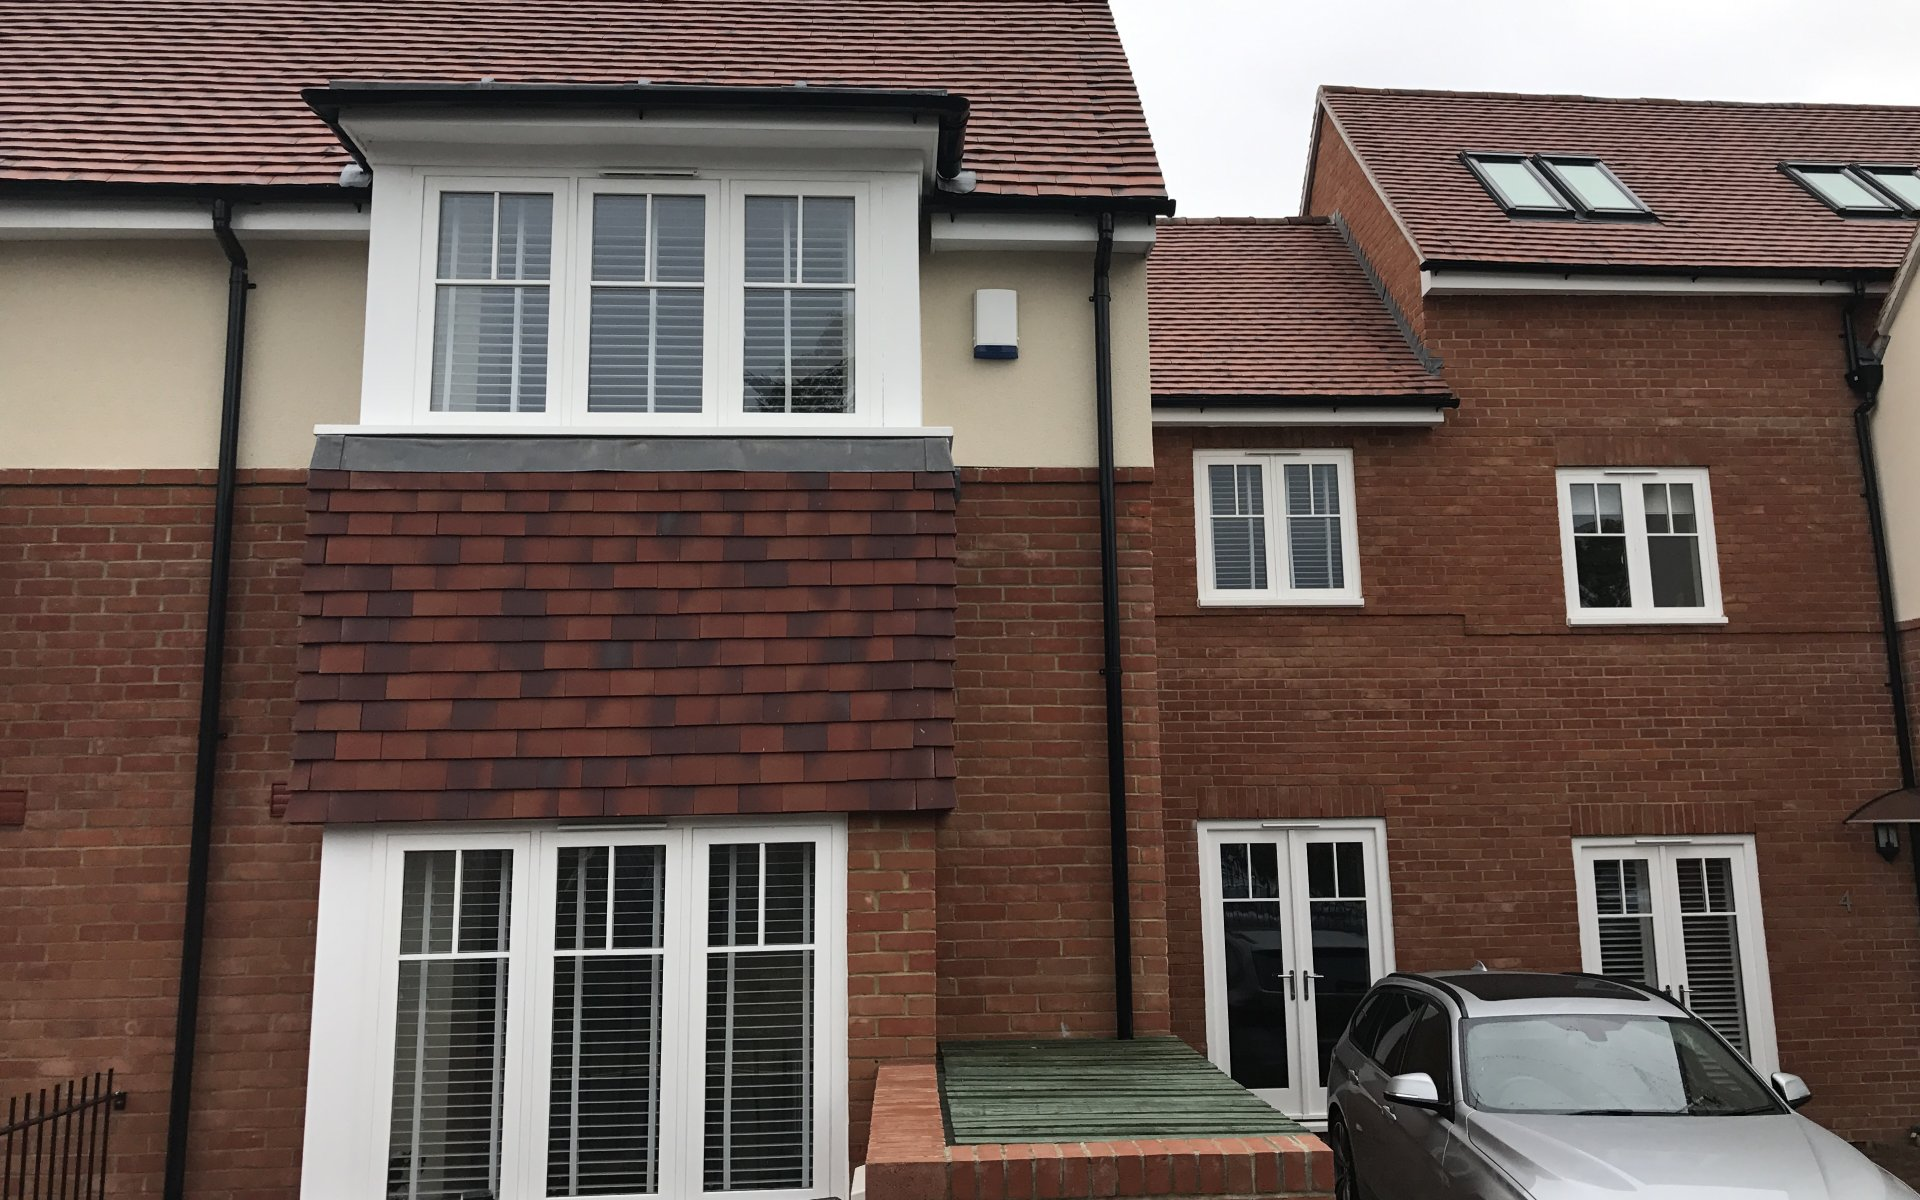 New Development of Six Town Houses in Marlow, Buckinghamshire